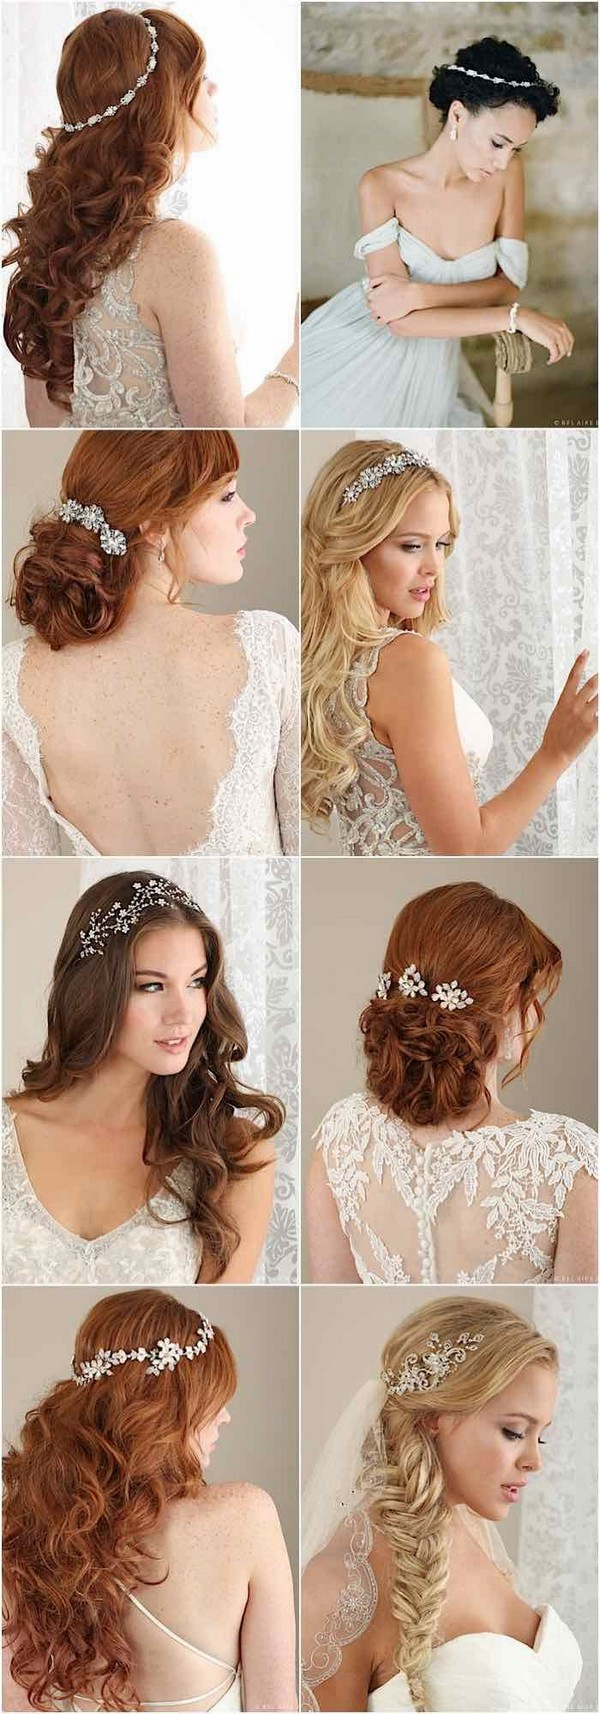 100+ Romantic Long Wedding Hairstyles 2019 – Curls, Half Up, Updos Inside Widely Used Bridal Chignon Hairstyles With Headband And Veil (Gallery 17 of 20)